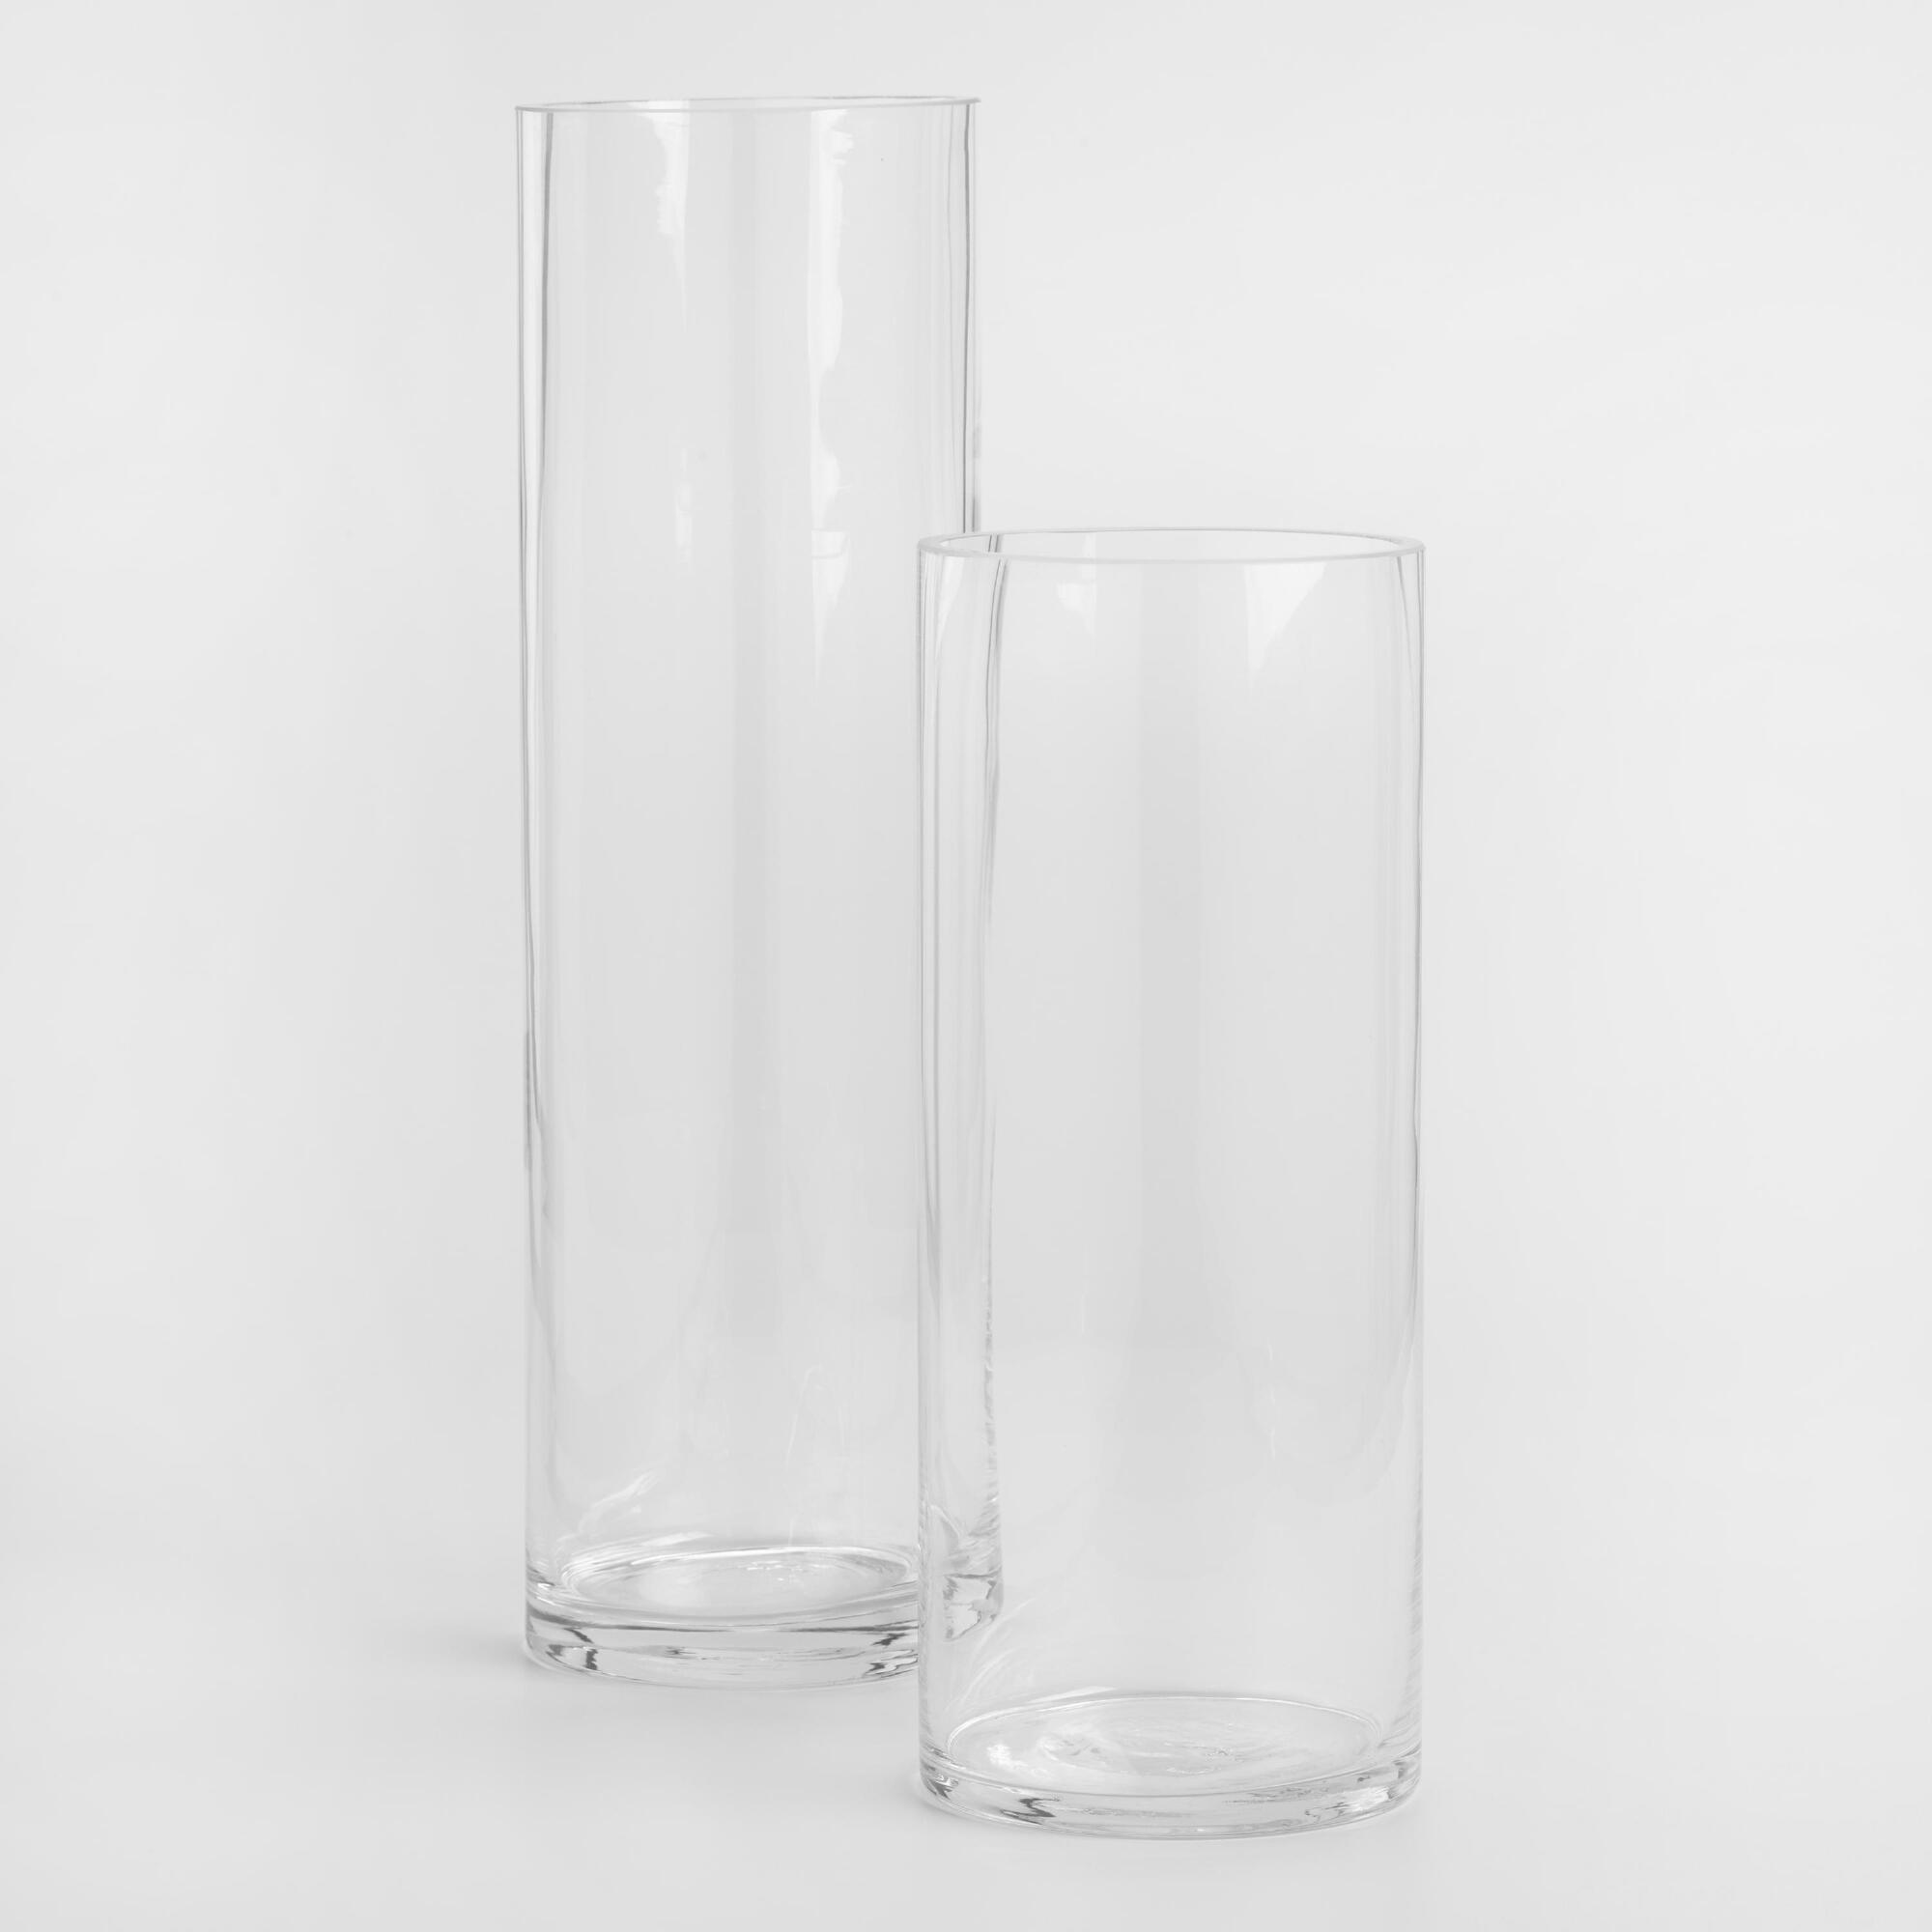 Shop our best selection of Clear Vases to reflect your style and inspire your home. Find the perfect decorative accents at Hayneedle, where you can buy online while you explore our room designs and curated looks for tips, ideas & inspiration to help you along the way.